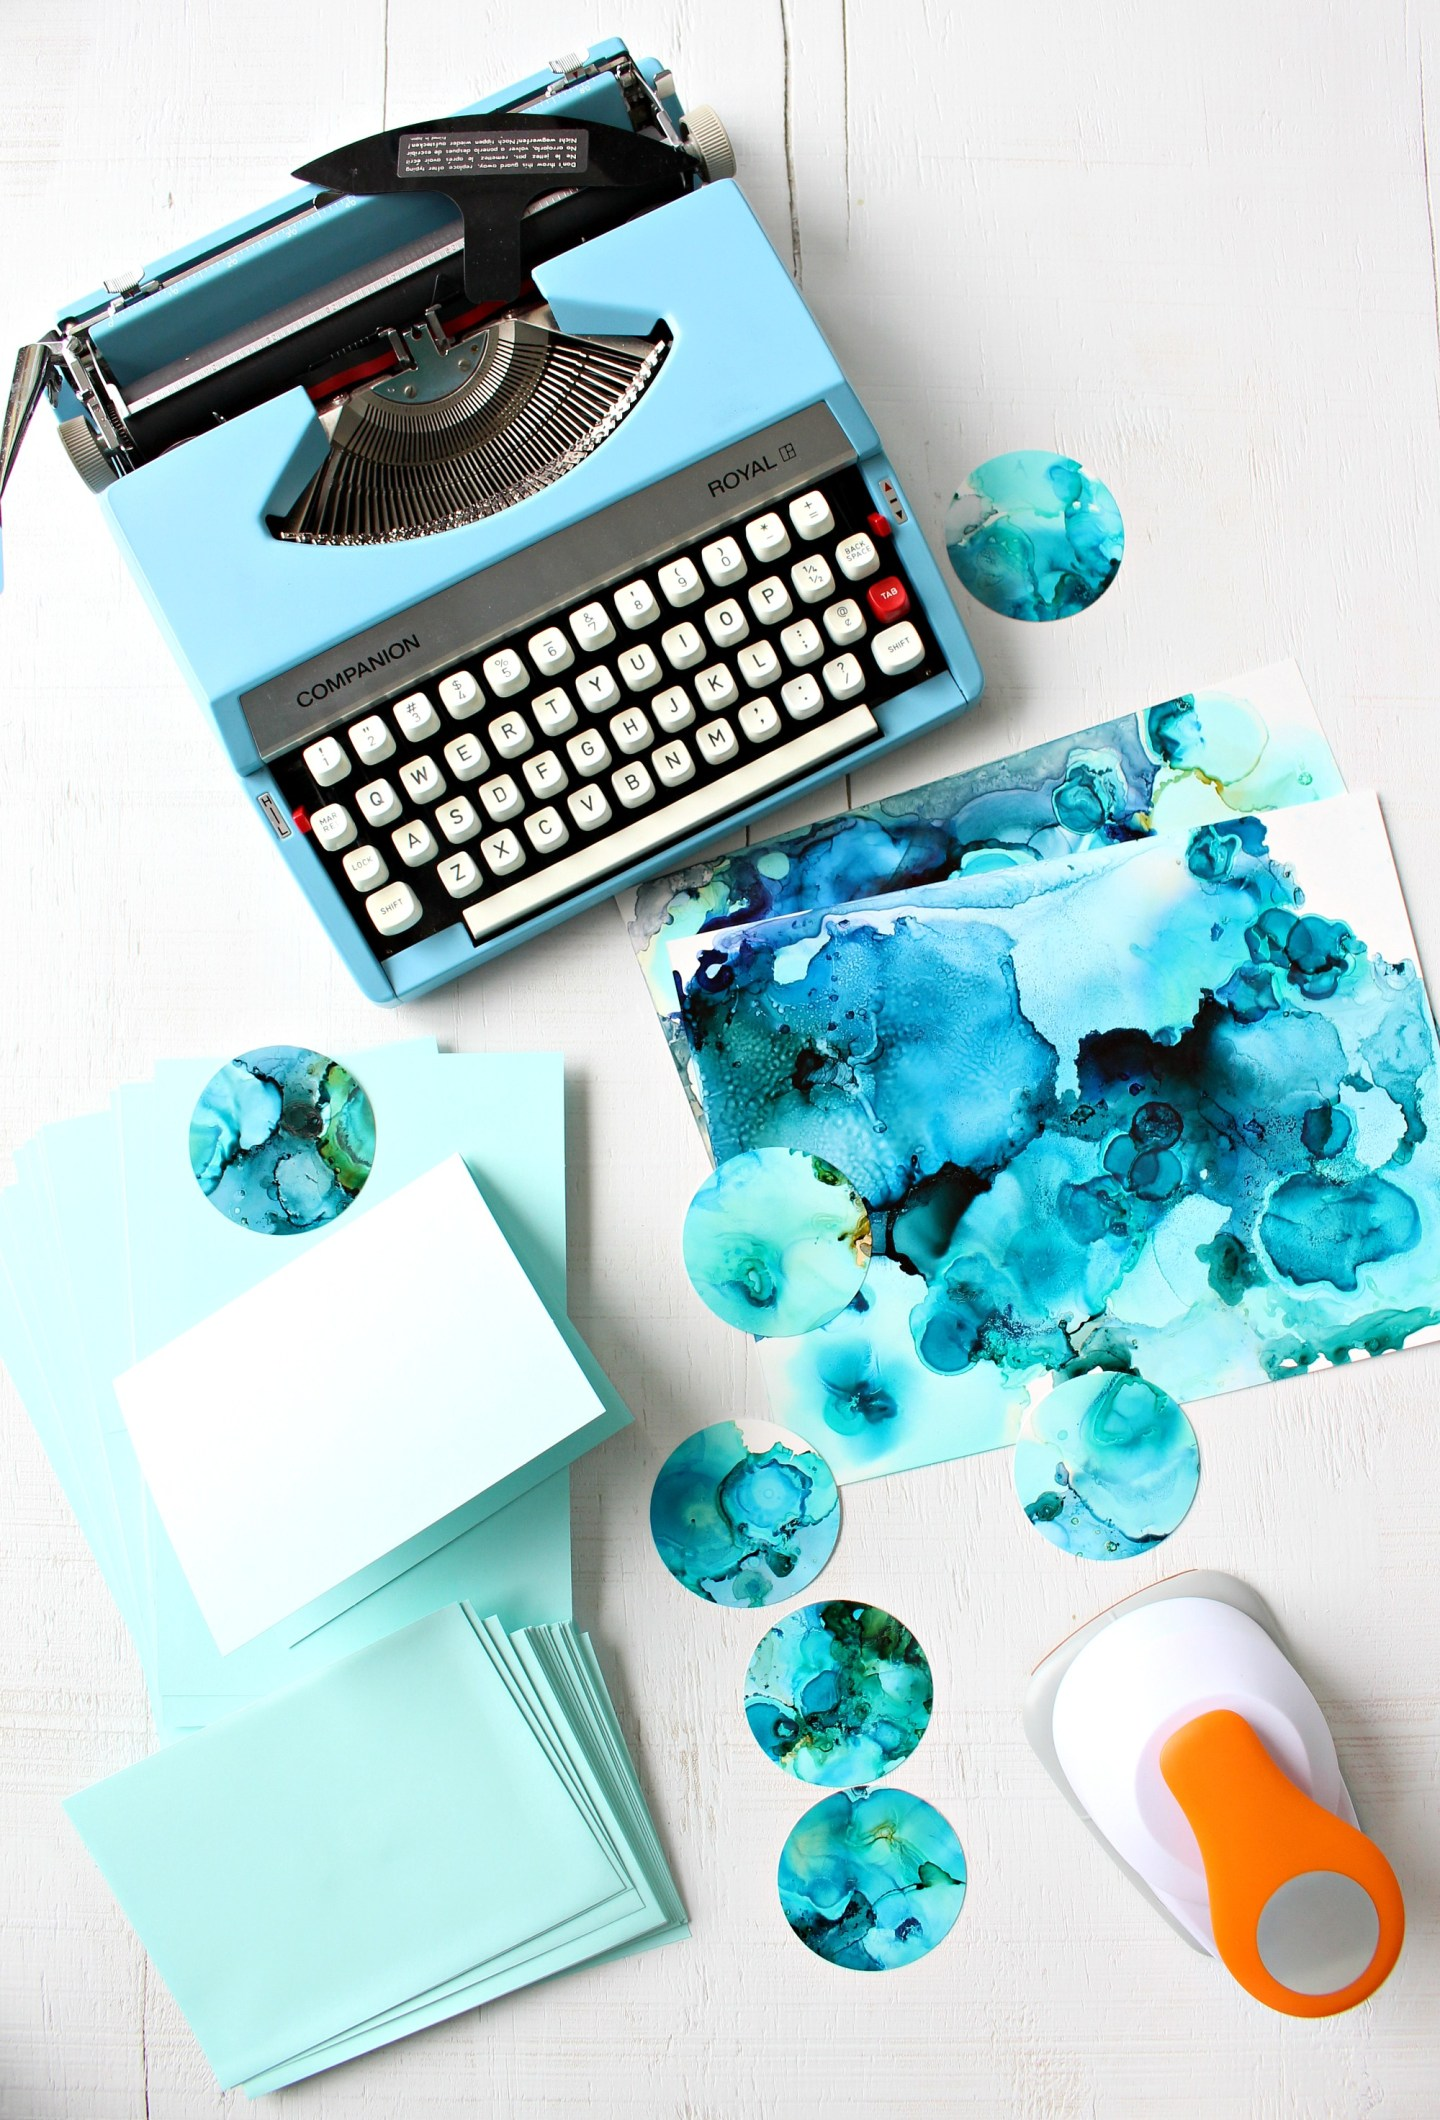 Make Handmade Holiday Cards with Alcohol Inks and a Retro Typewriter